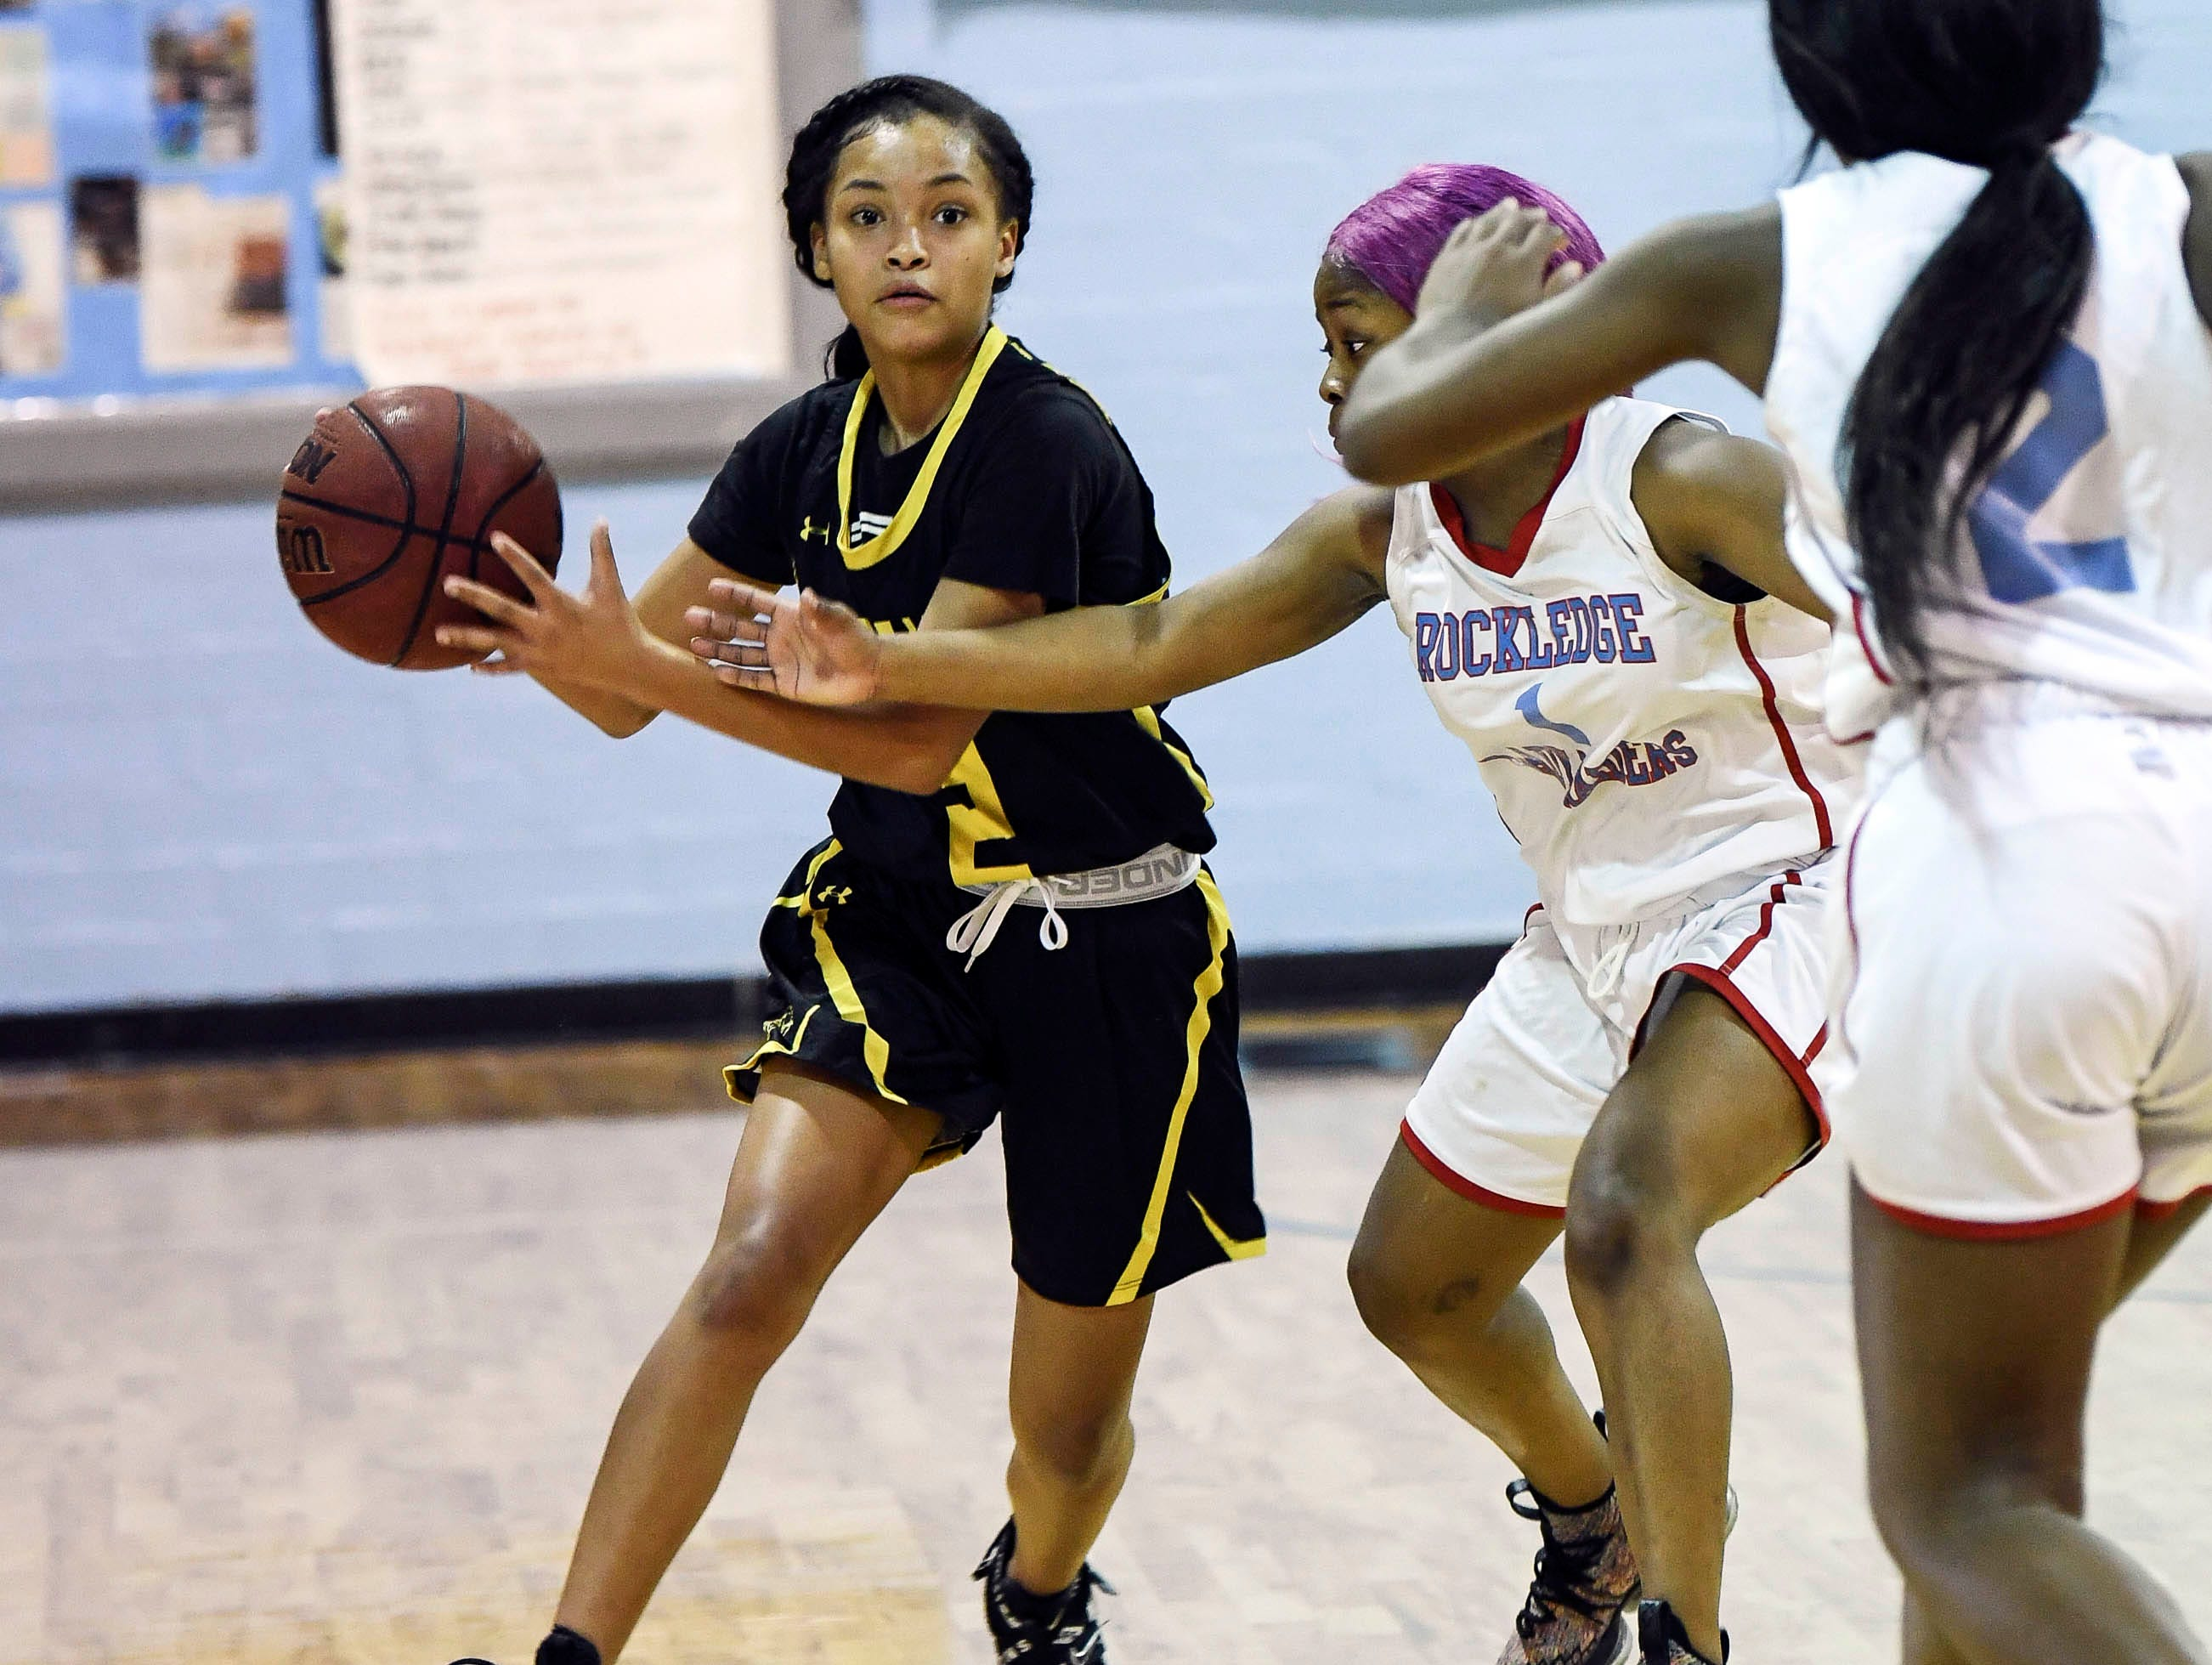 Shakira Fernandez of Merritt tries to drive through  a Rockledge double team District 14-6A basketball tournament at Rockledge High School.